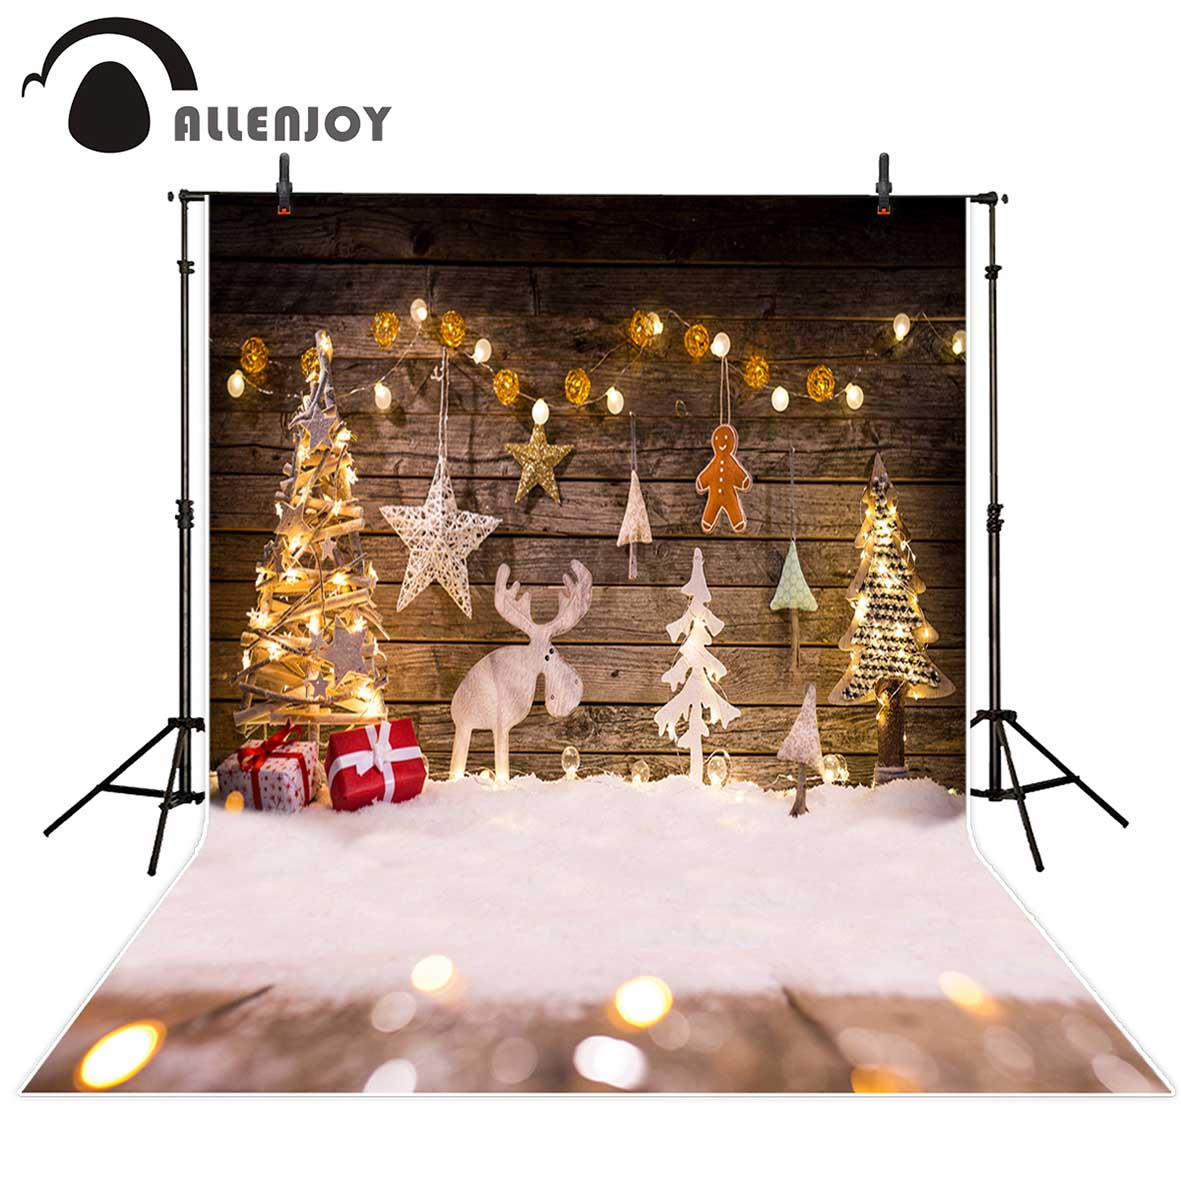 Allenjoy background for photo Christmas shiny tree snow kids wood wall backdrop photocall photobooth photo studio professional allenjoy christmas kitchen background wood for photo studio child cook backdrop photobooth photocall photography photo shoot